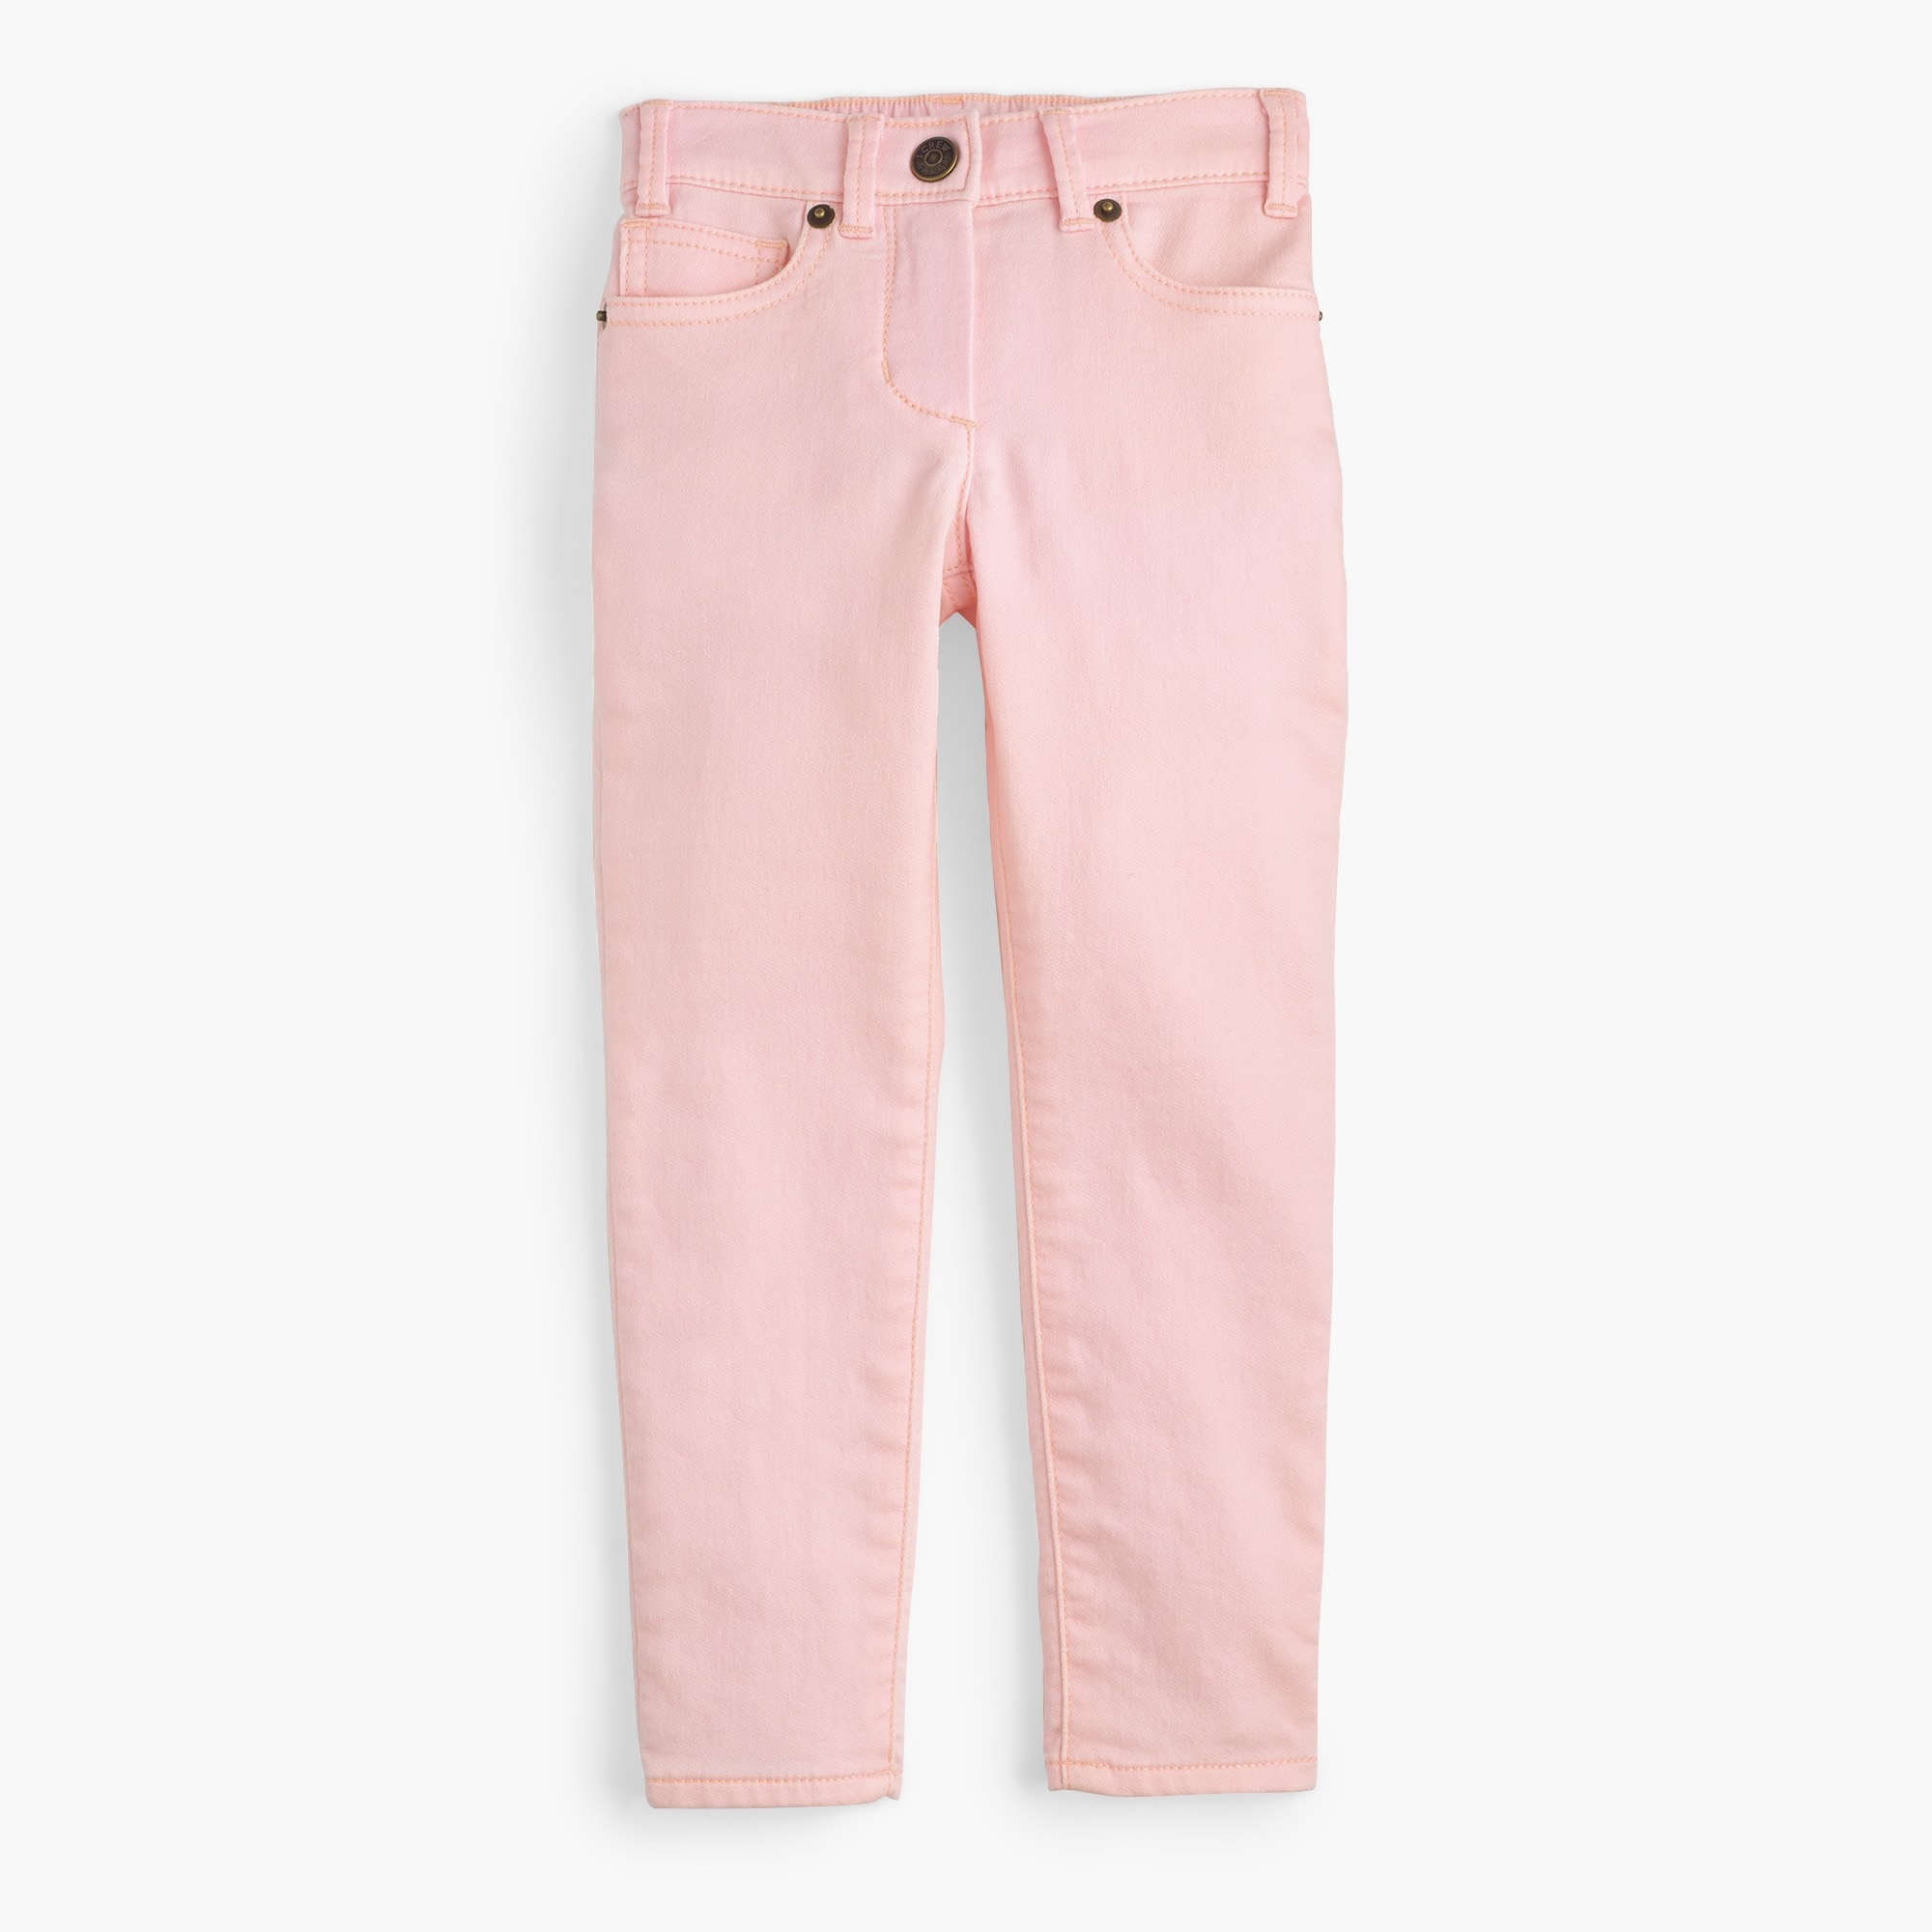 Girls' garment-dyed runaround jeans girl new arrivals c